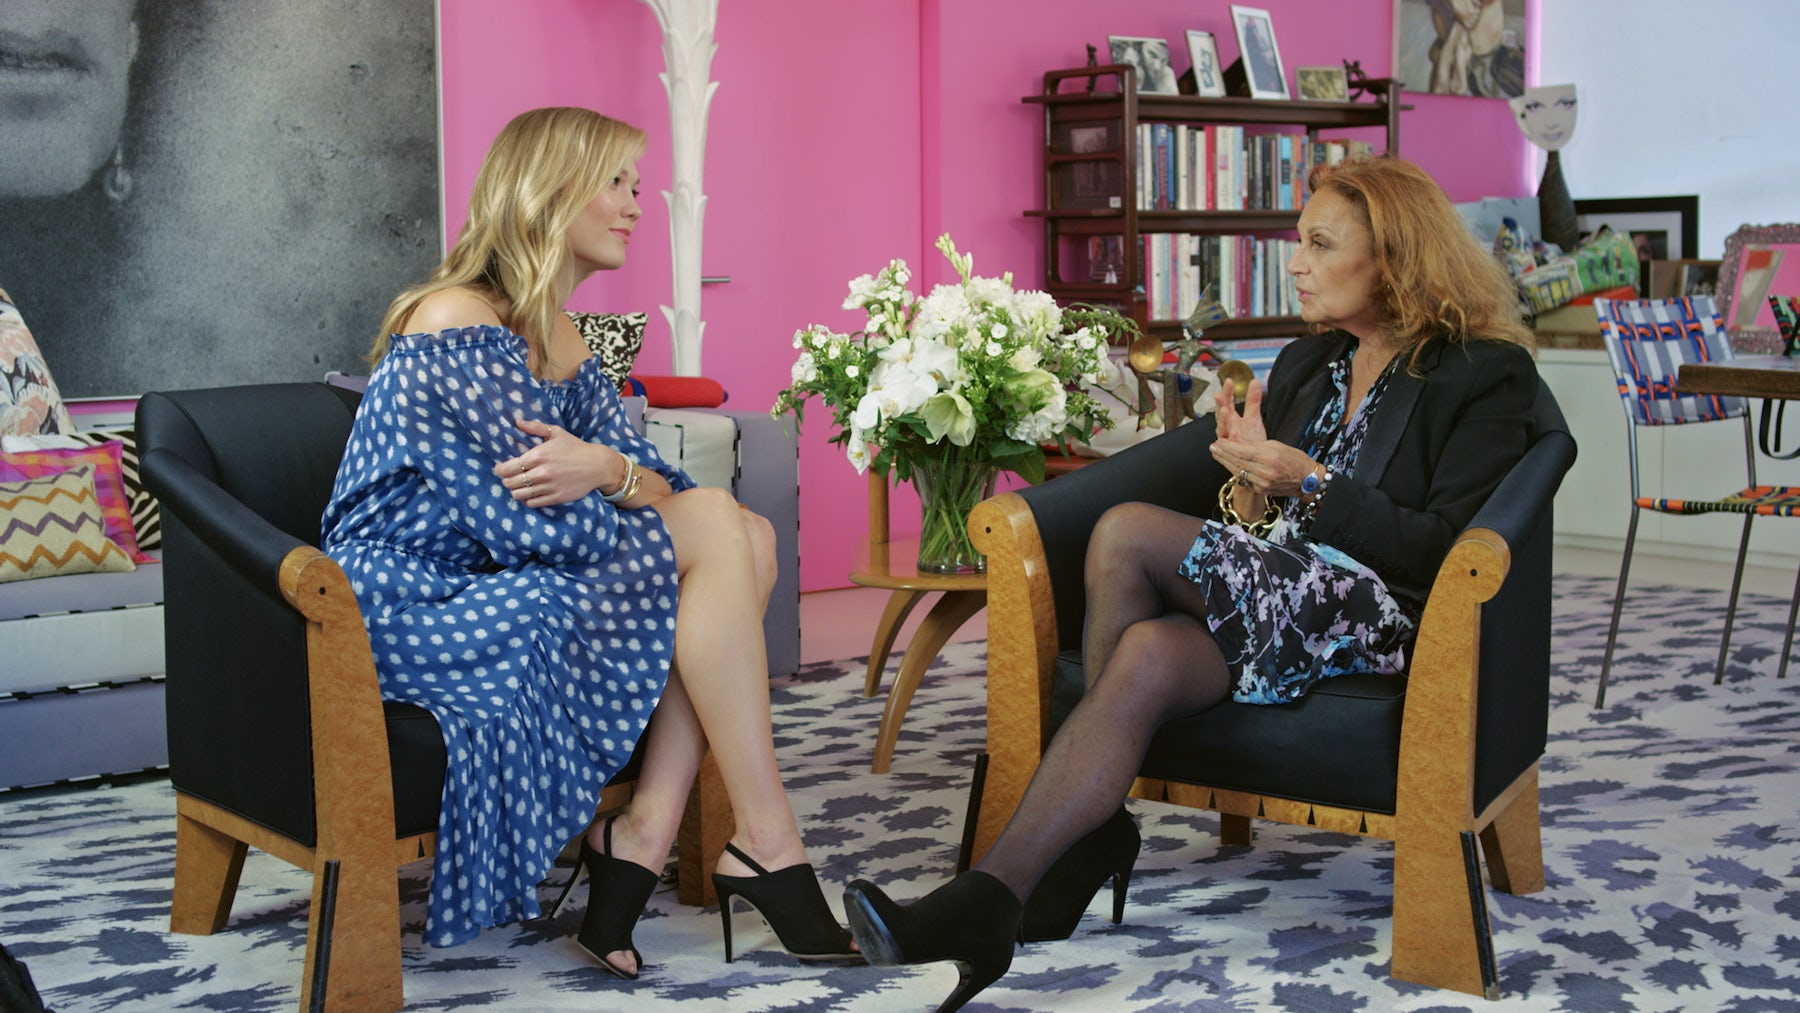 Karlie Kloss and Diane von Fürsternberg talk on M2M, a TV network launched by WME-IMG | Source: Courtesy